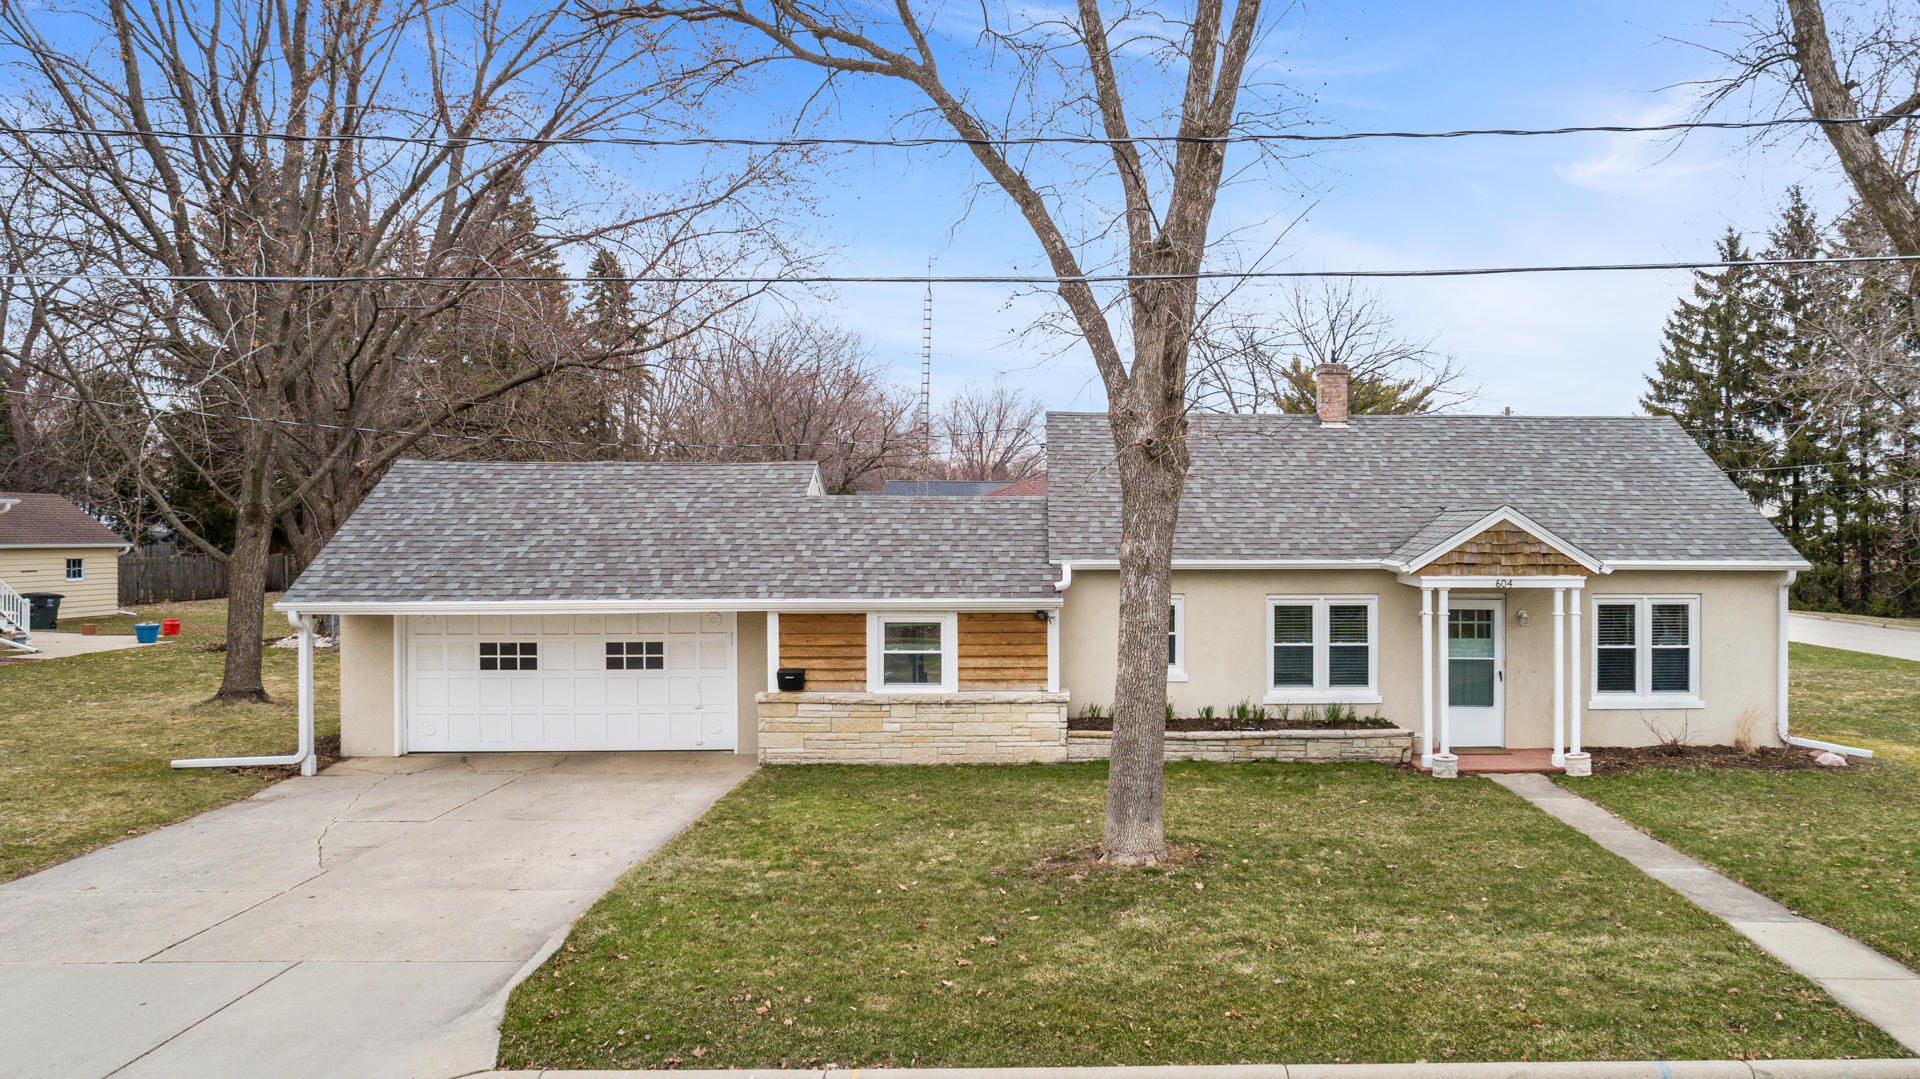 604 Highland Ave, Oconomowoc, Wisconsin 53066, 2 Bedrooms Bedrooms, 6 Rooms Rooms,1 BathroomBathrooms,Single-Family,For Sale,Highland Ave,1682808